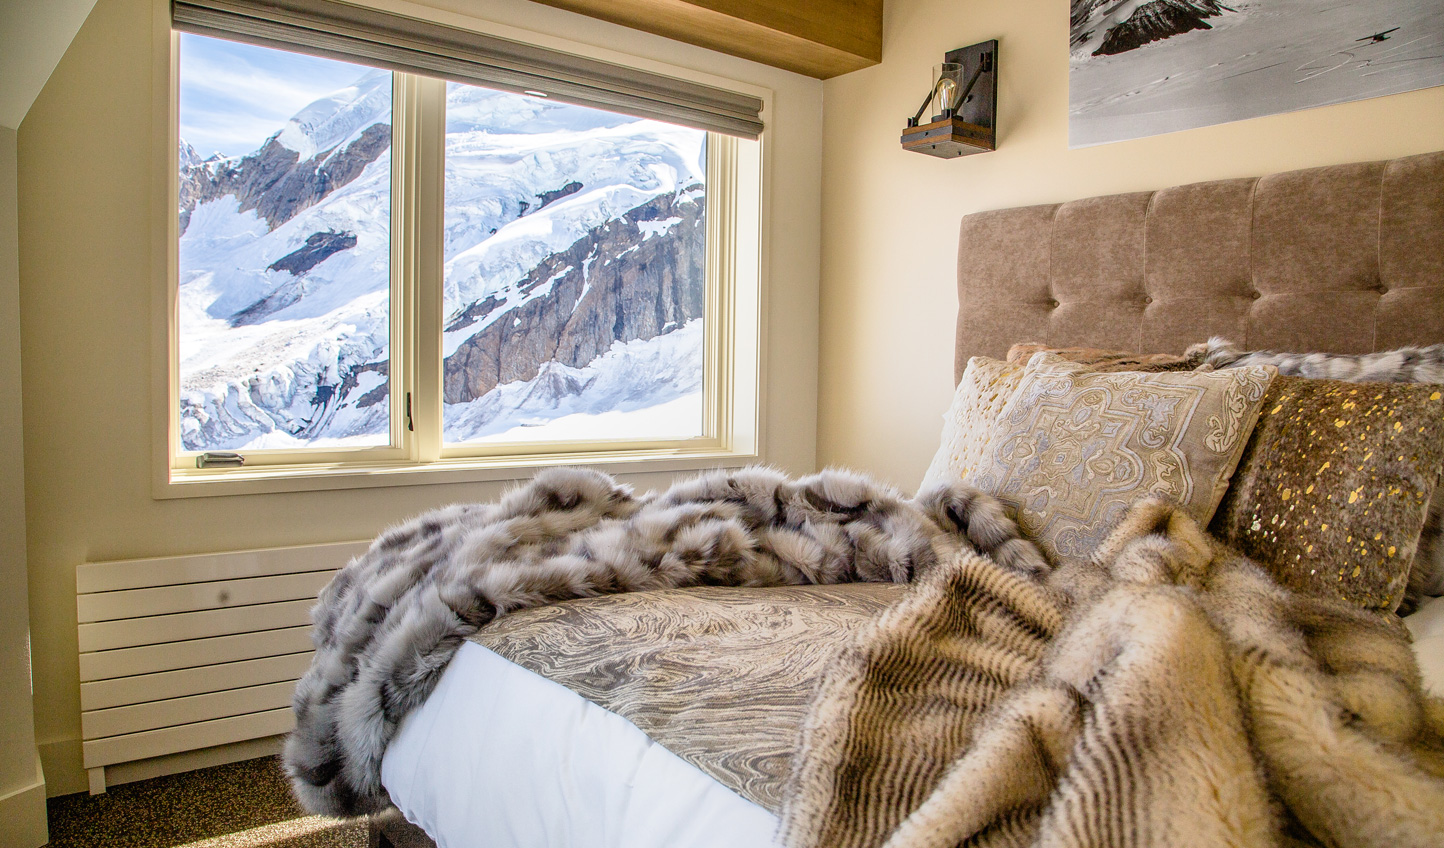 Snuggle up beneath cosy fur throws in your panoramic guestroom